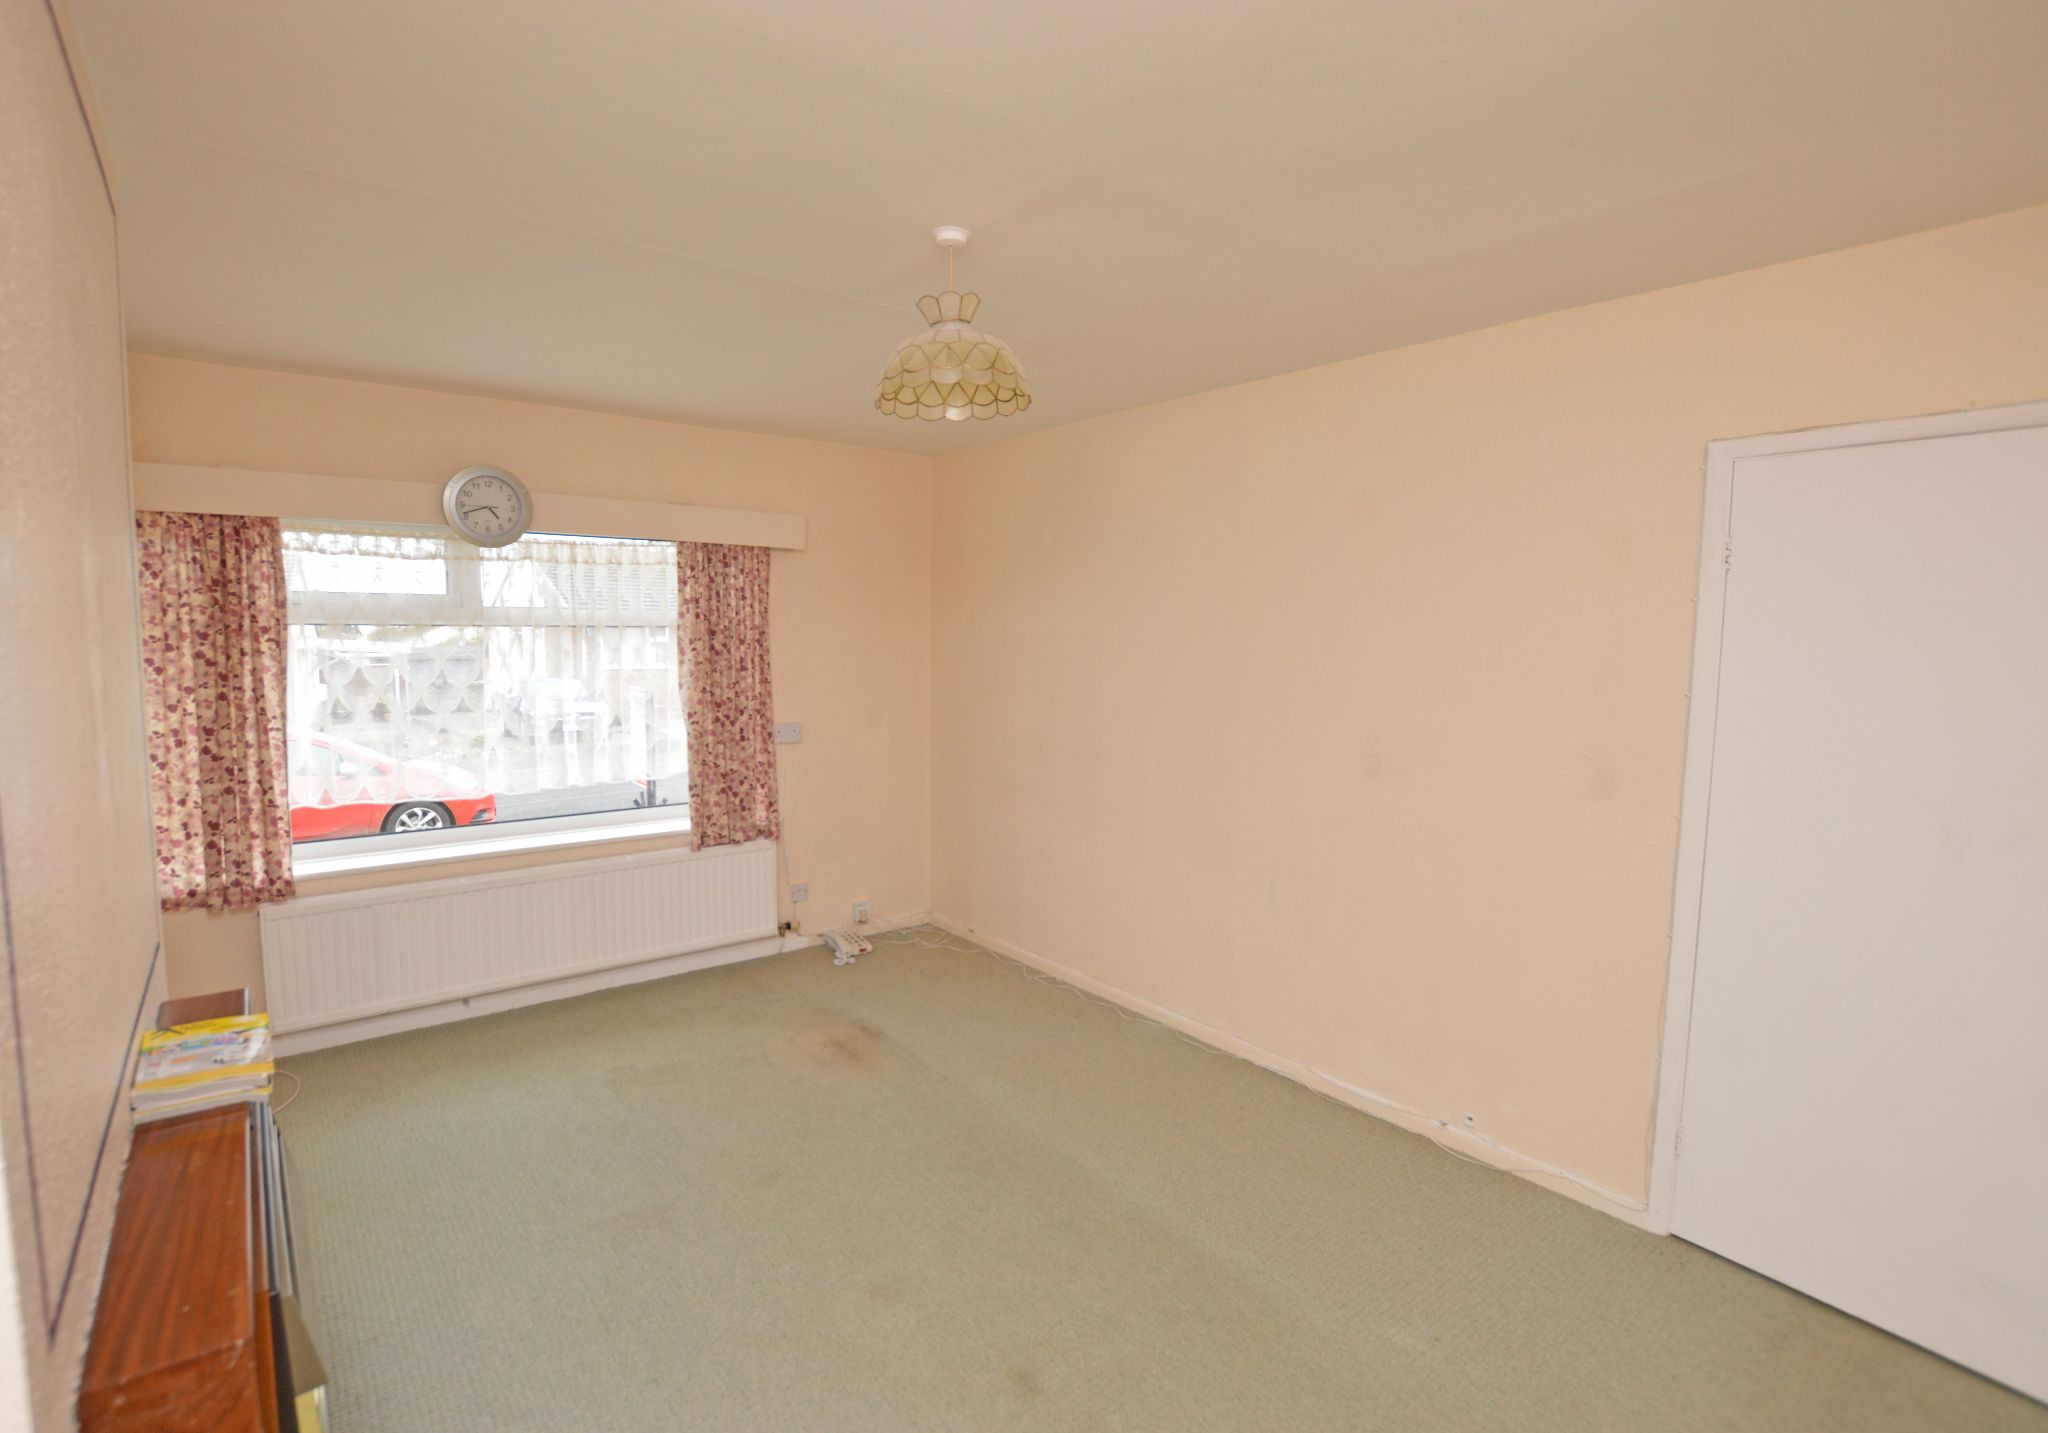 2 bedroom semi-detached bungalow For Sale in Abergele - Lounge View 3